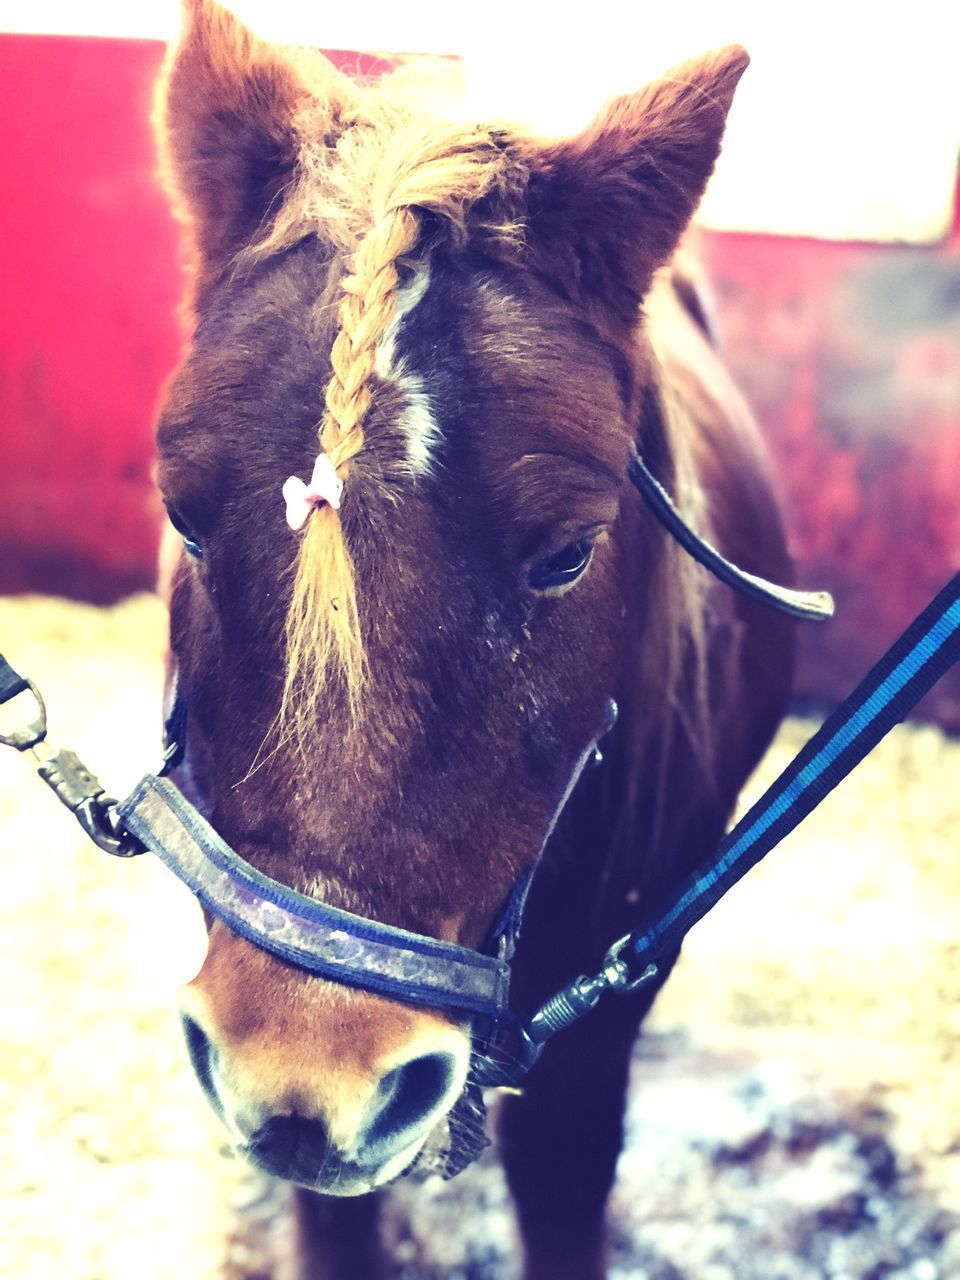 CLOSE-UP OF A HORSE IN THE RANCH